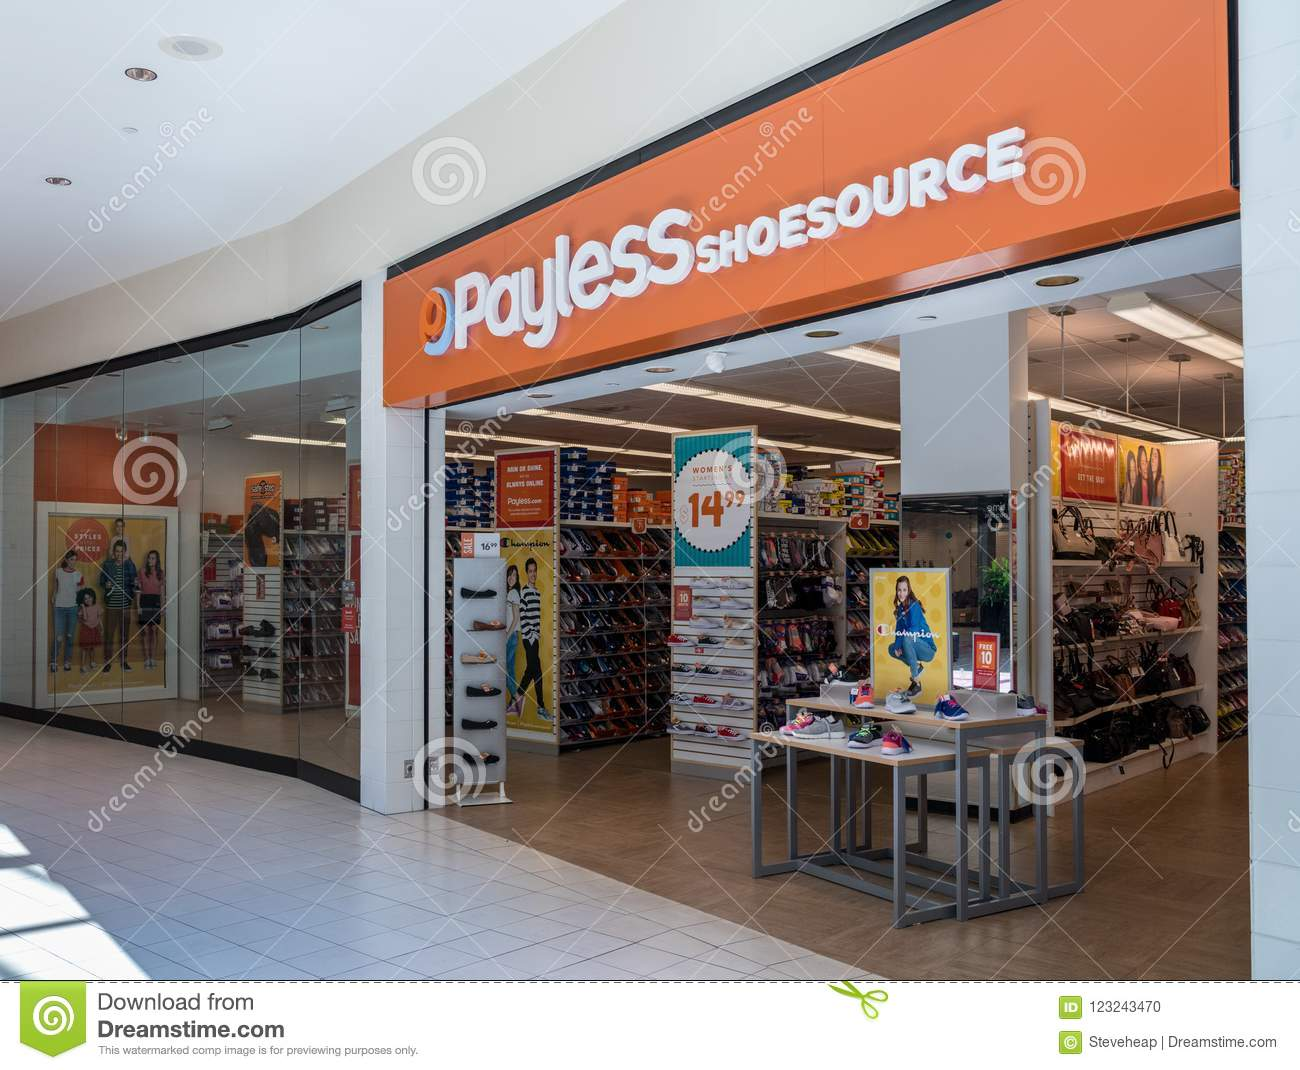 Payless Shoes Photos - Free \u0026 Royalty